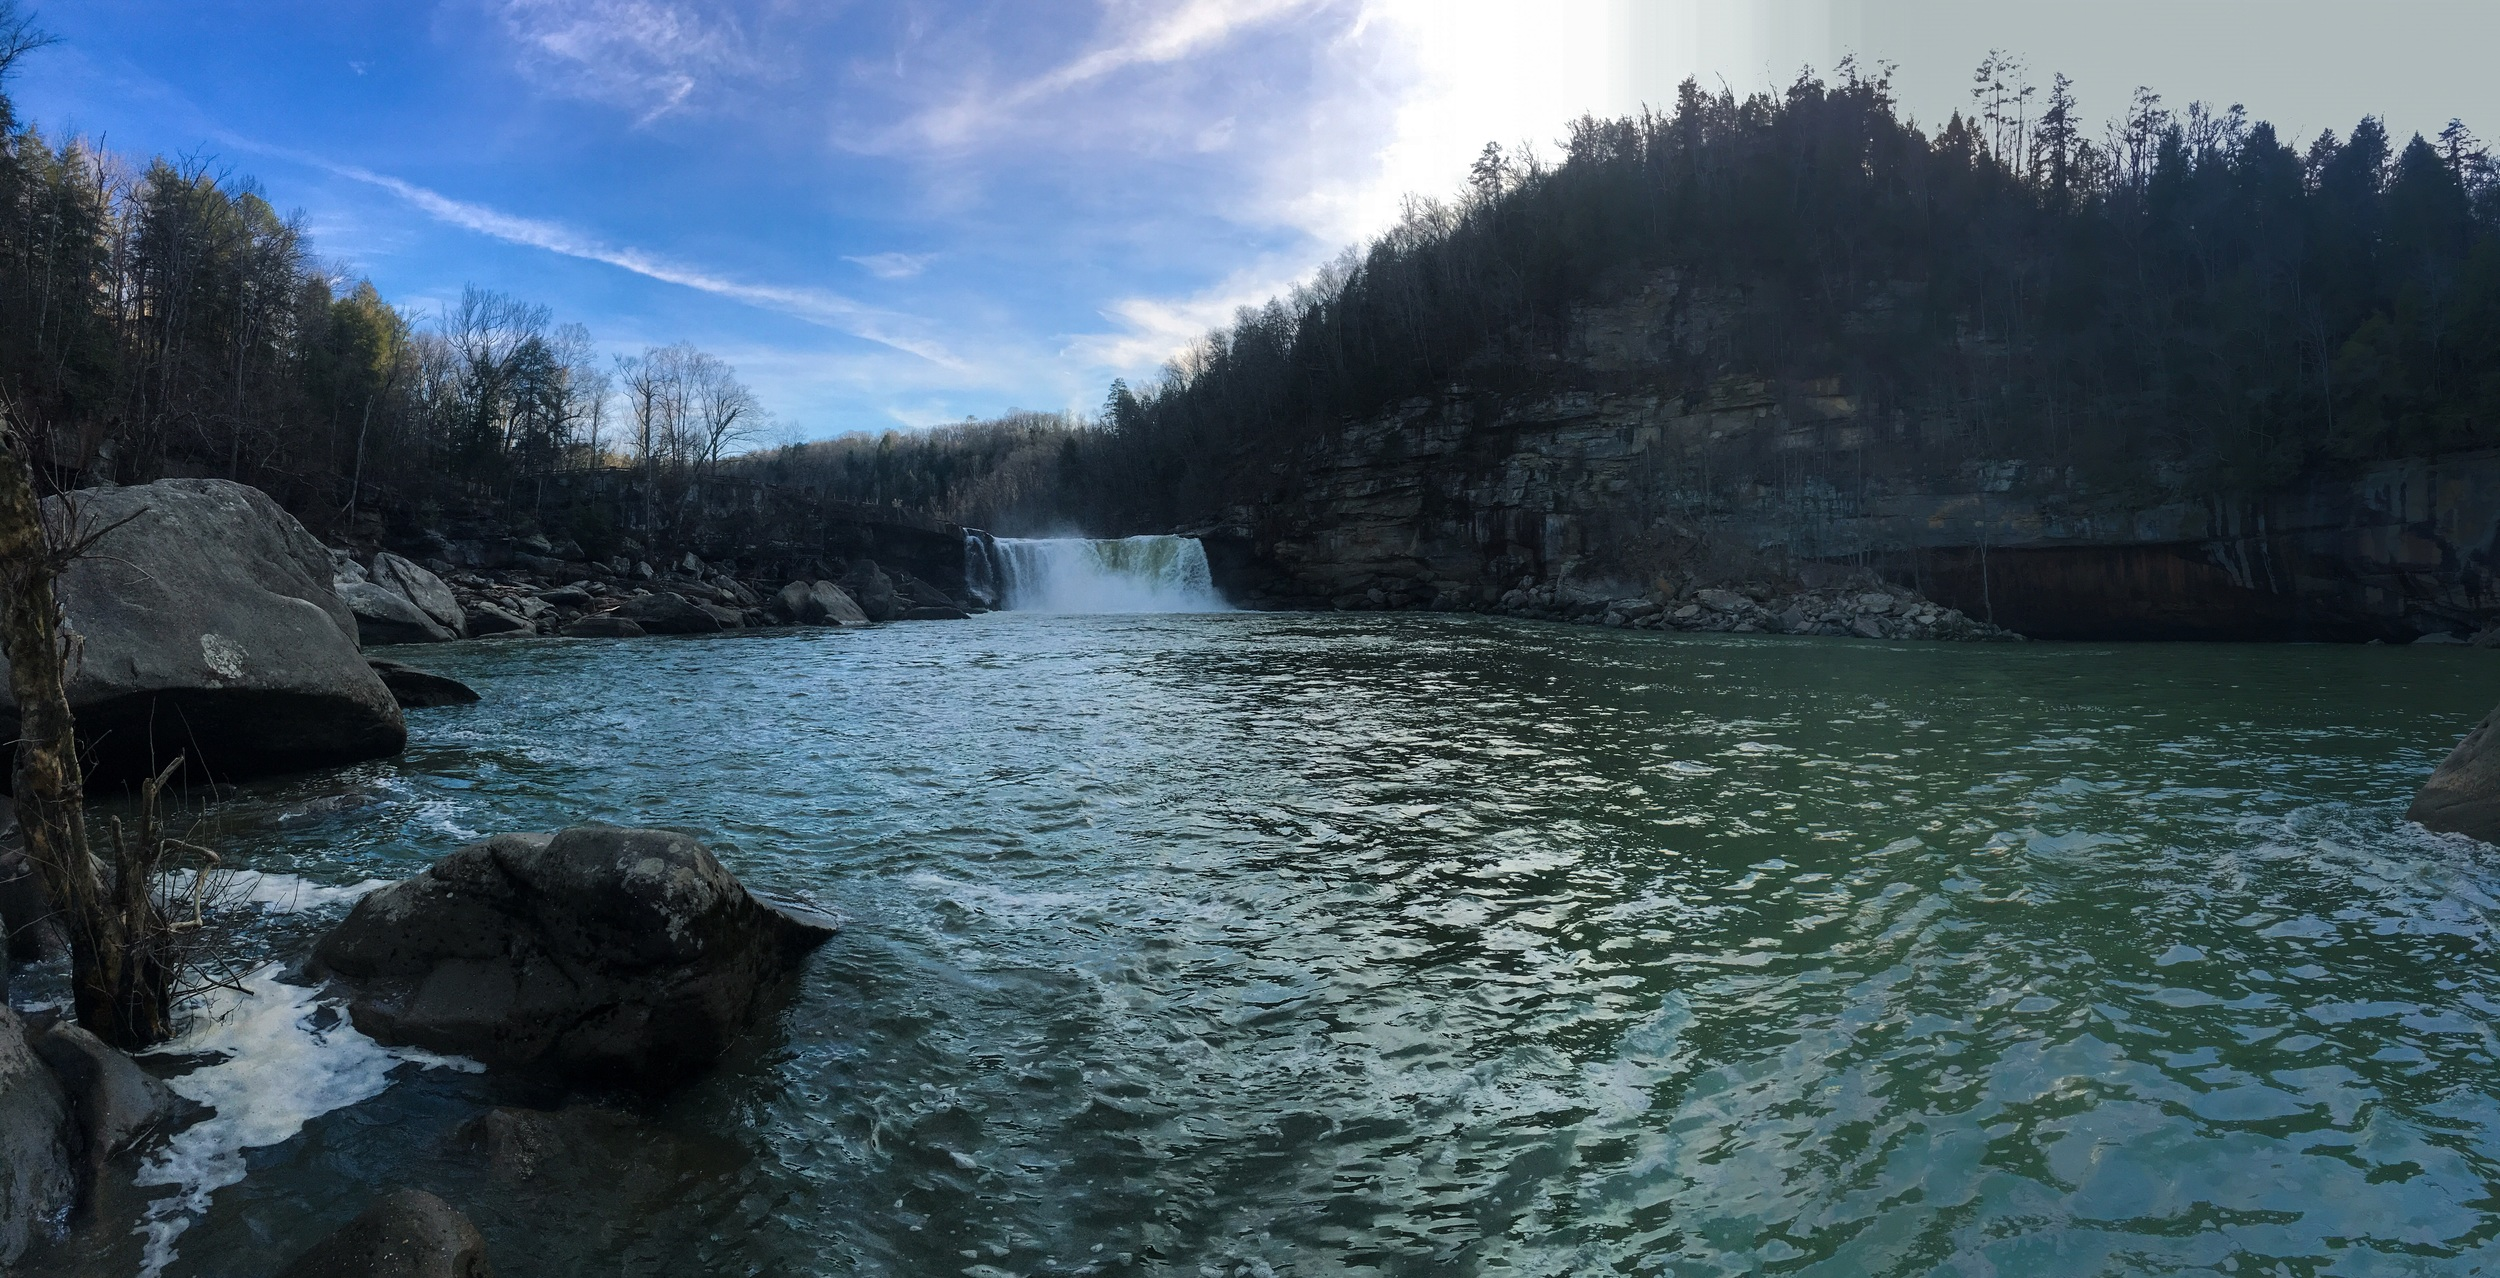 Panorama of Cumberland Falls State Park. Shot on iPhone 6s